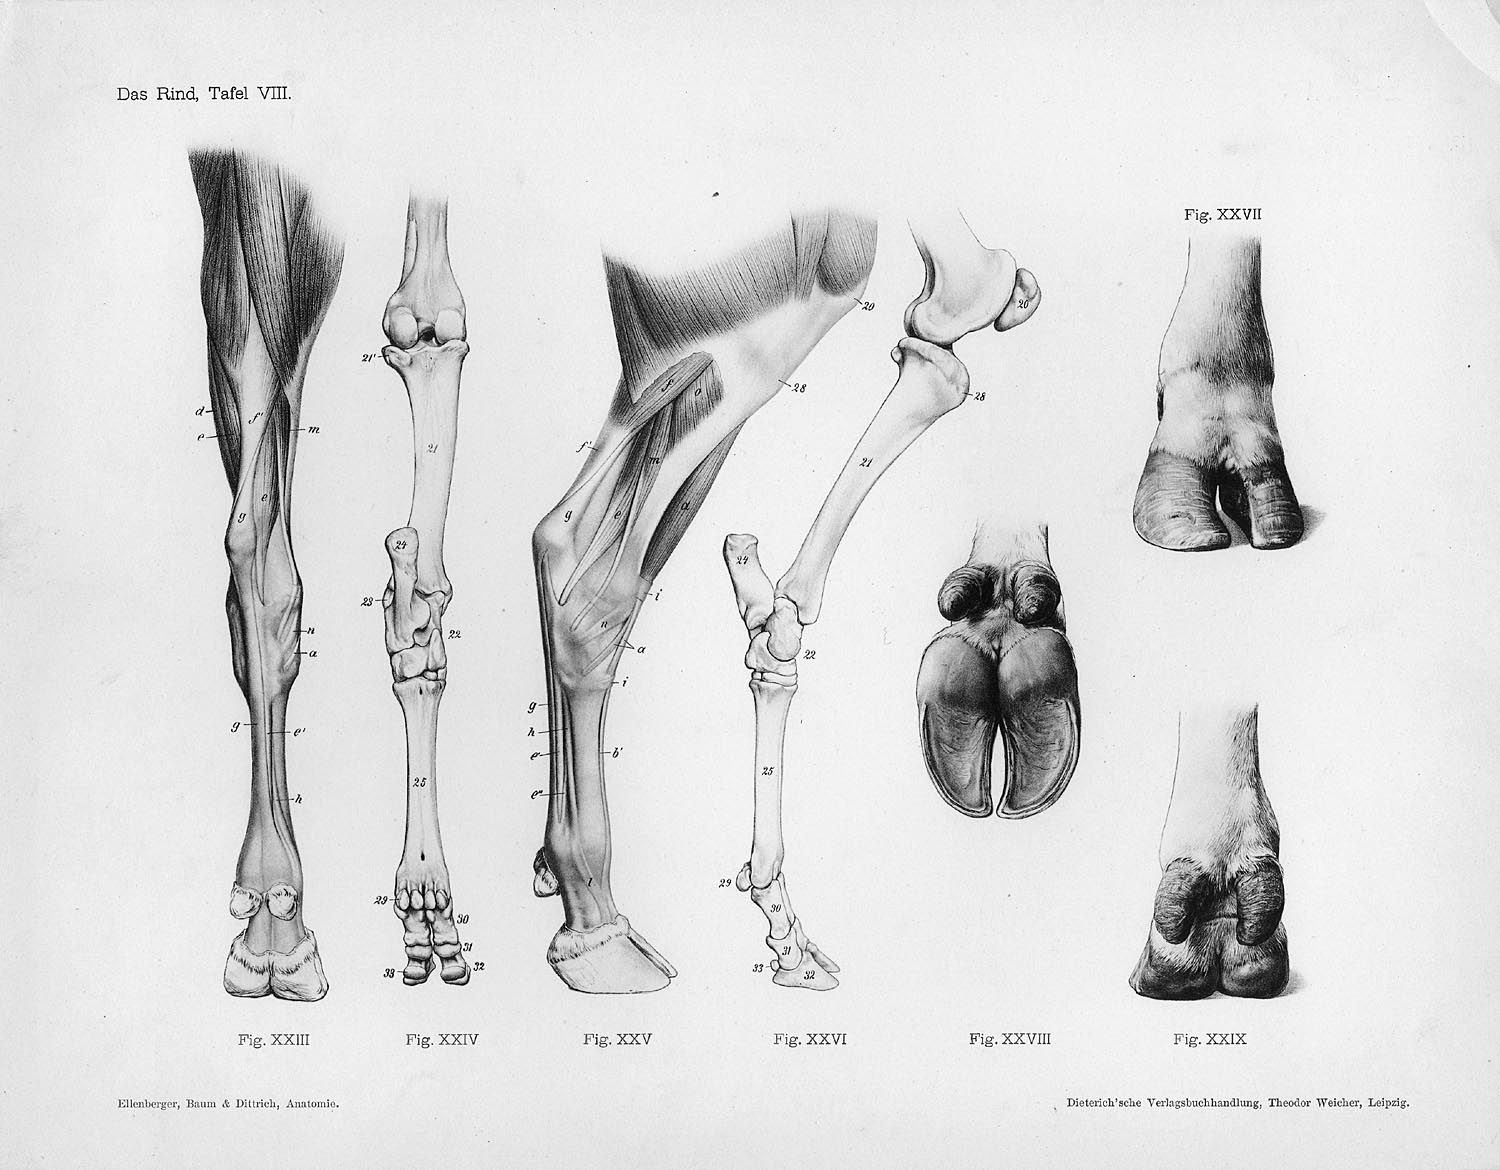 Pin by Jorrie Bolton on Bovids   Pinterest   Cow, Animal anatomy and ...